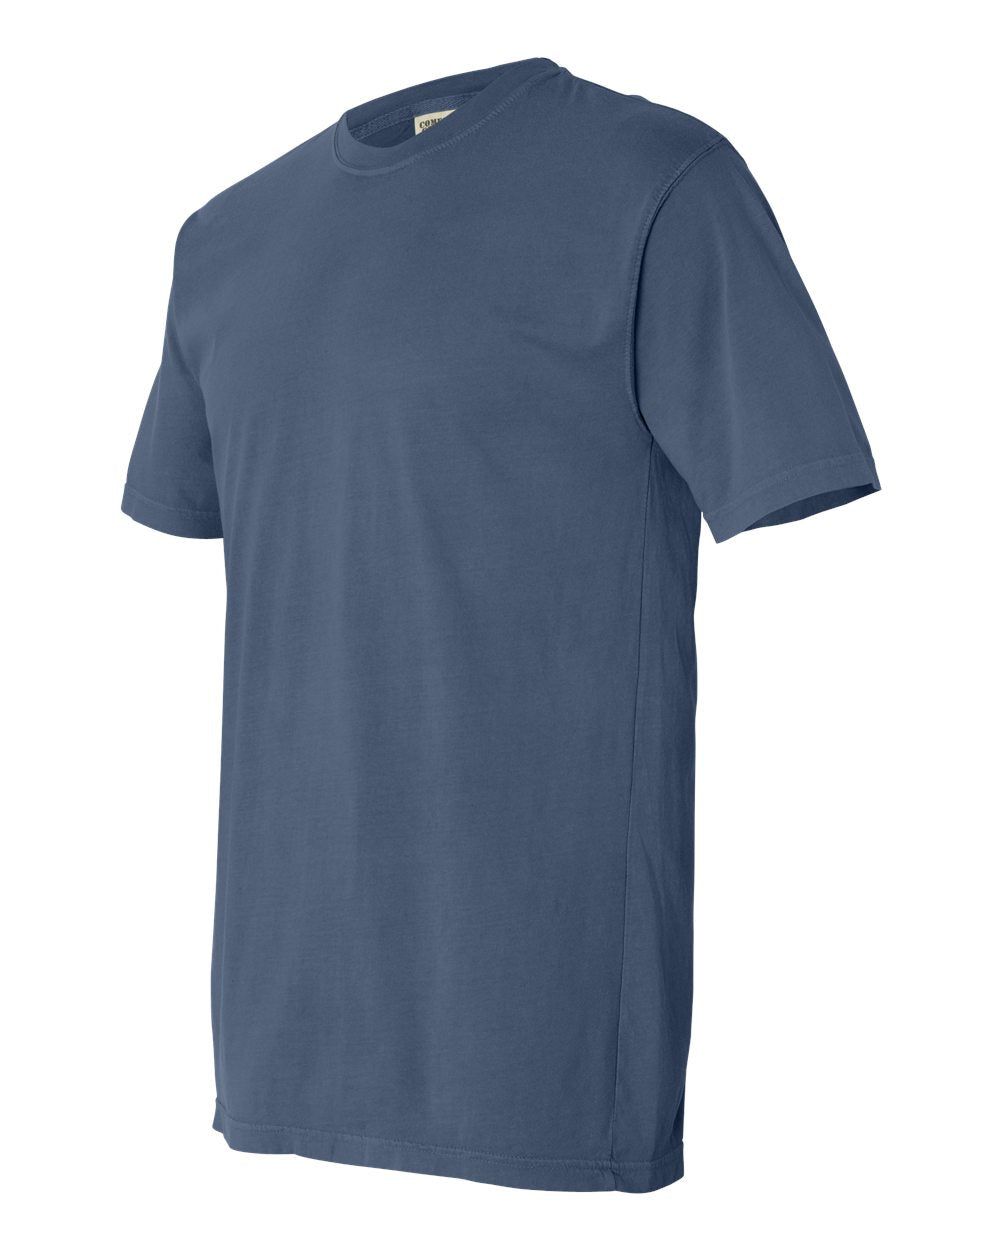 Comfort Colors, Garment Dyed Lightweight Ringspun Short Sleeve T-Shirt - $$$